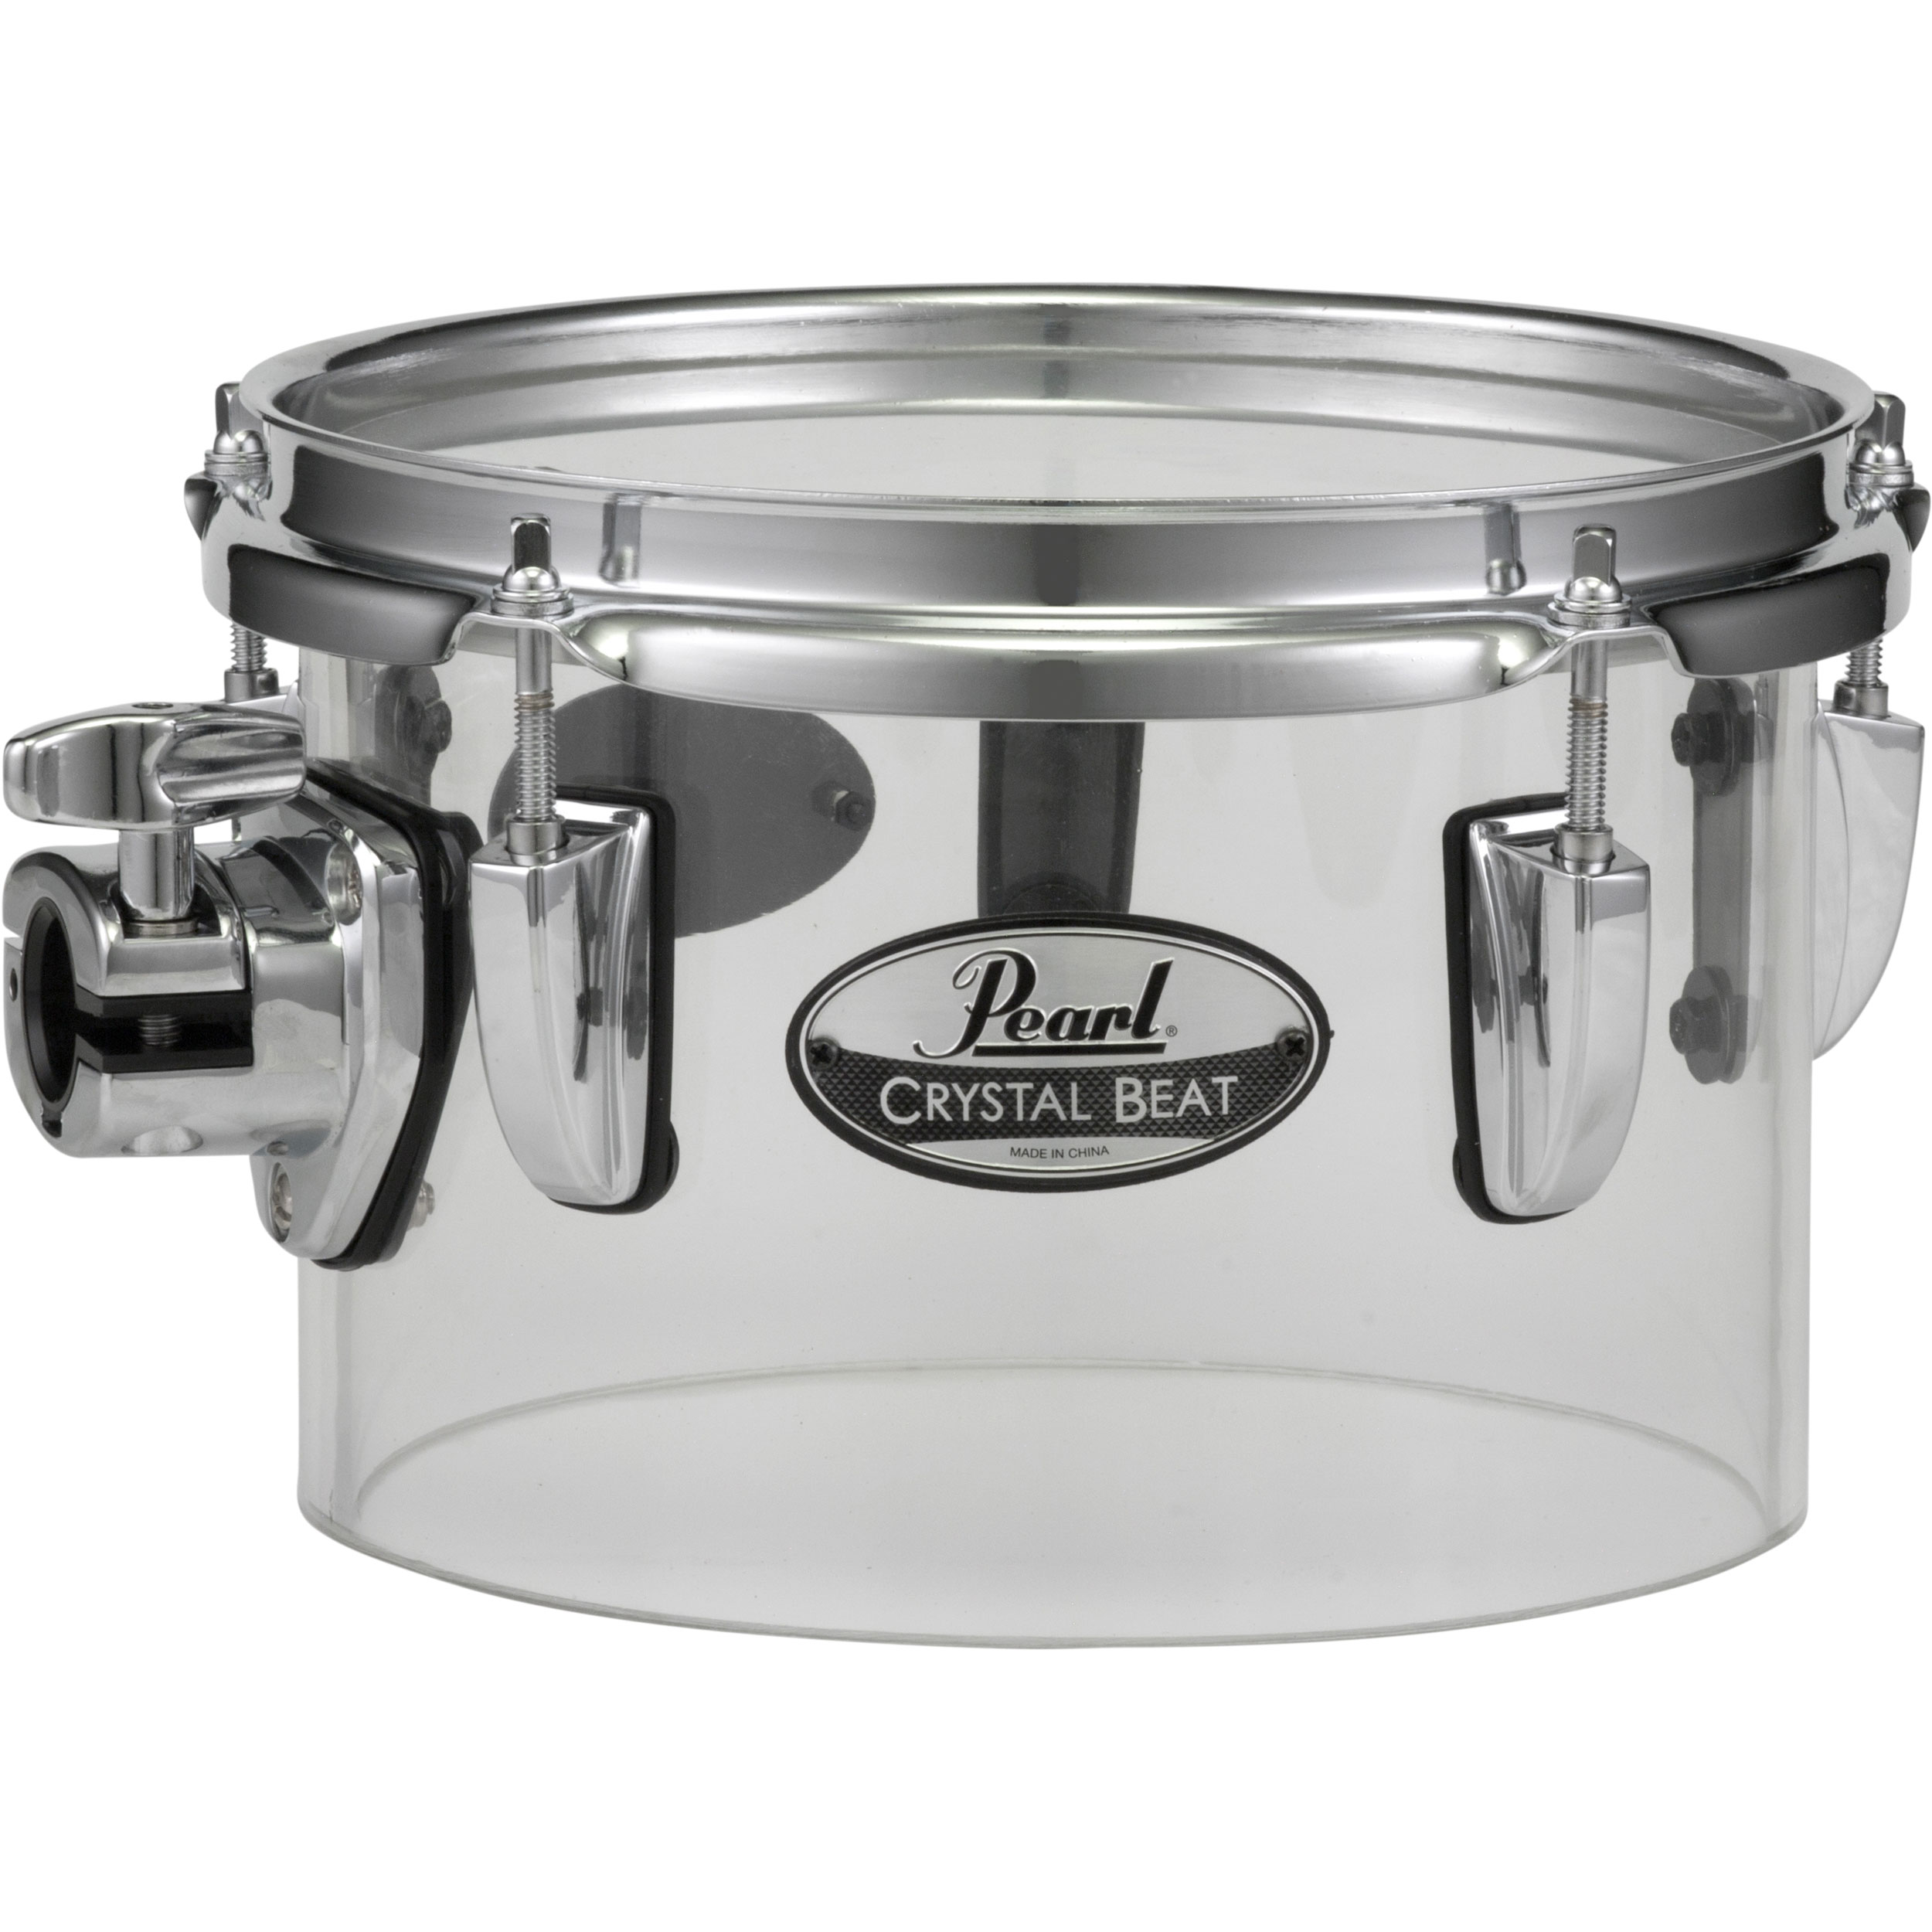 "Pearl 8"" (Diameter) x 5.5"" (Deep) Crystal Beat Single-Headed Concert Tom in Ultra Clear"